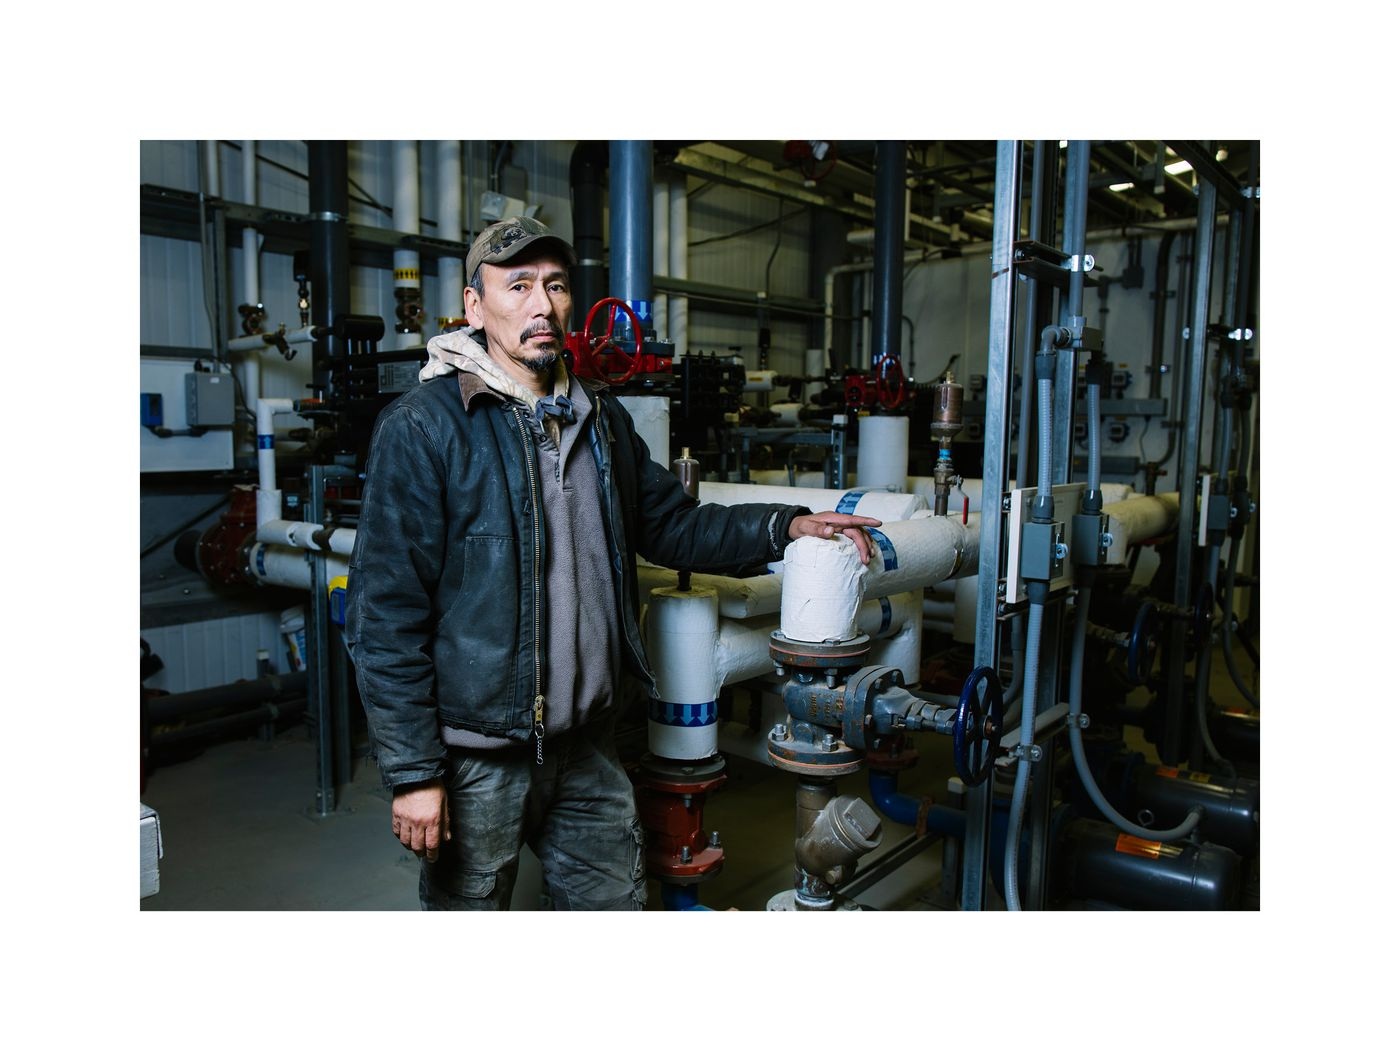 Varlam Jackson, one of the water treatment plant operators posing in the new plant. (Photo by Kerry Tasker)